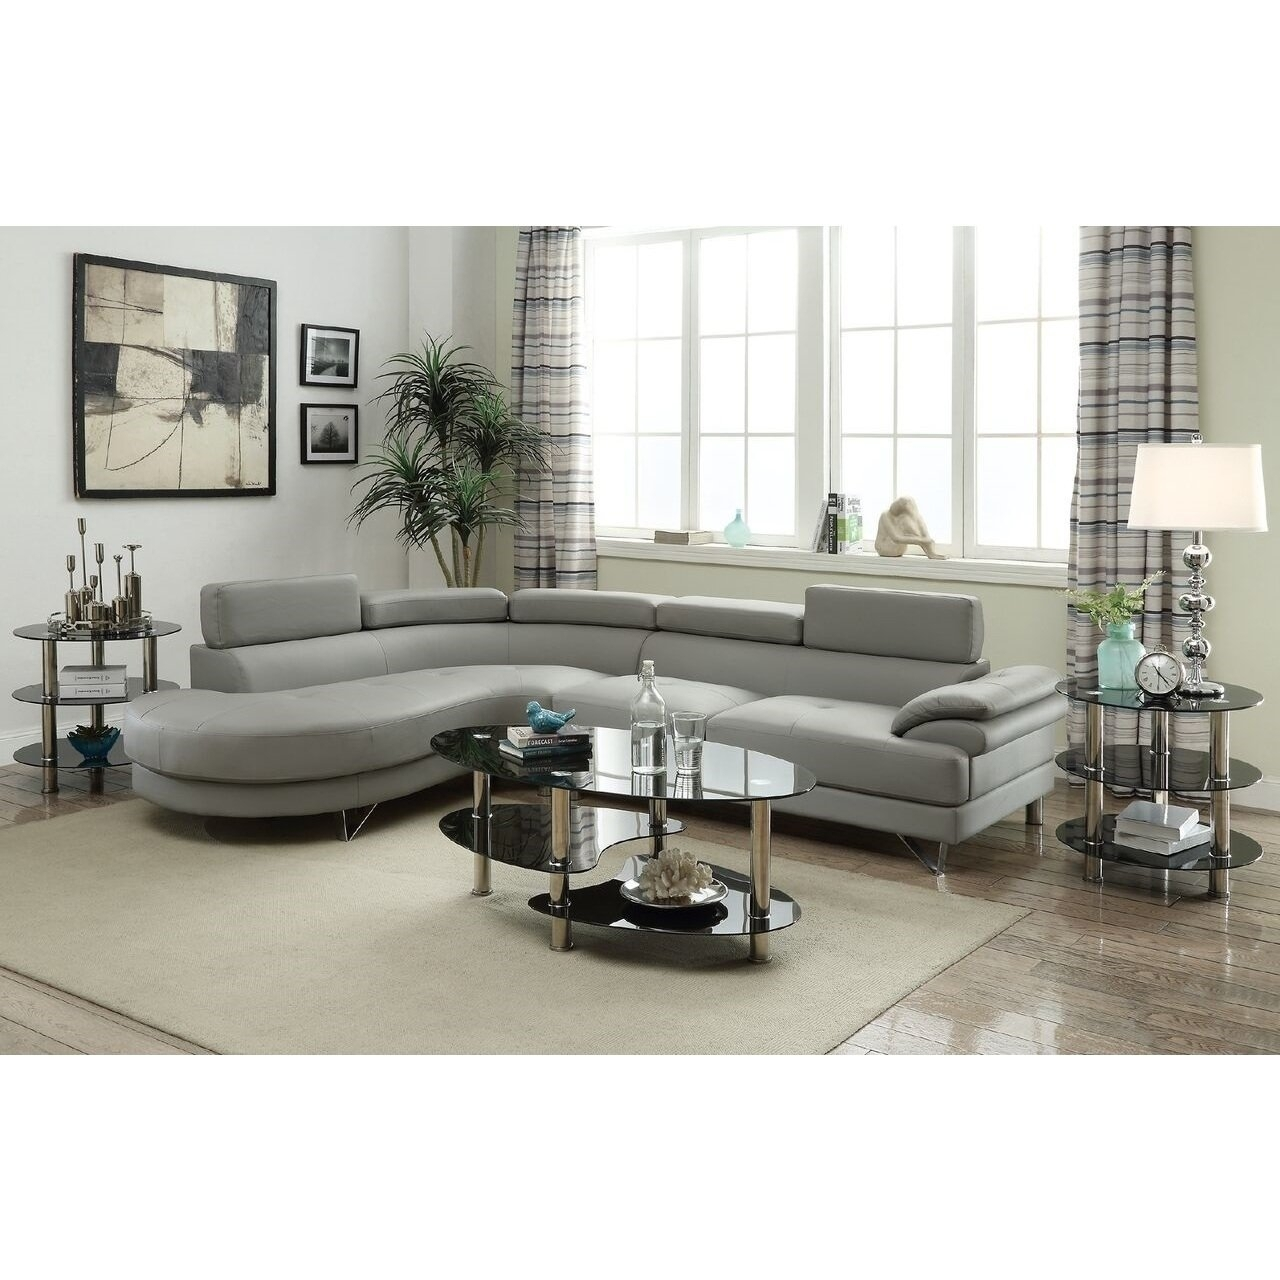 Shop Fanipal Grey Leather 2-Piece Sectional Sofa - Free Shipping regarding Aurora 2 Piece Sectionals (Image 26 of 30)